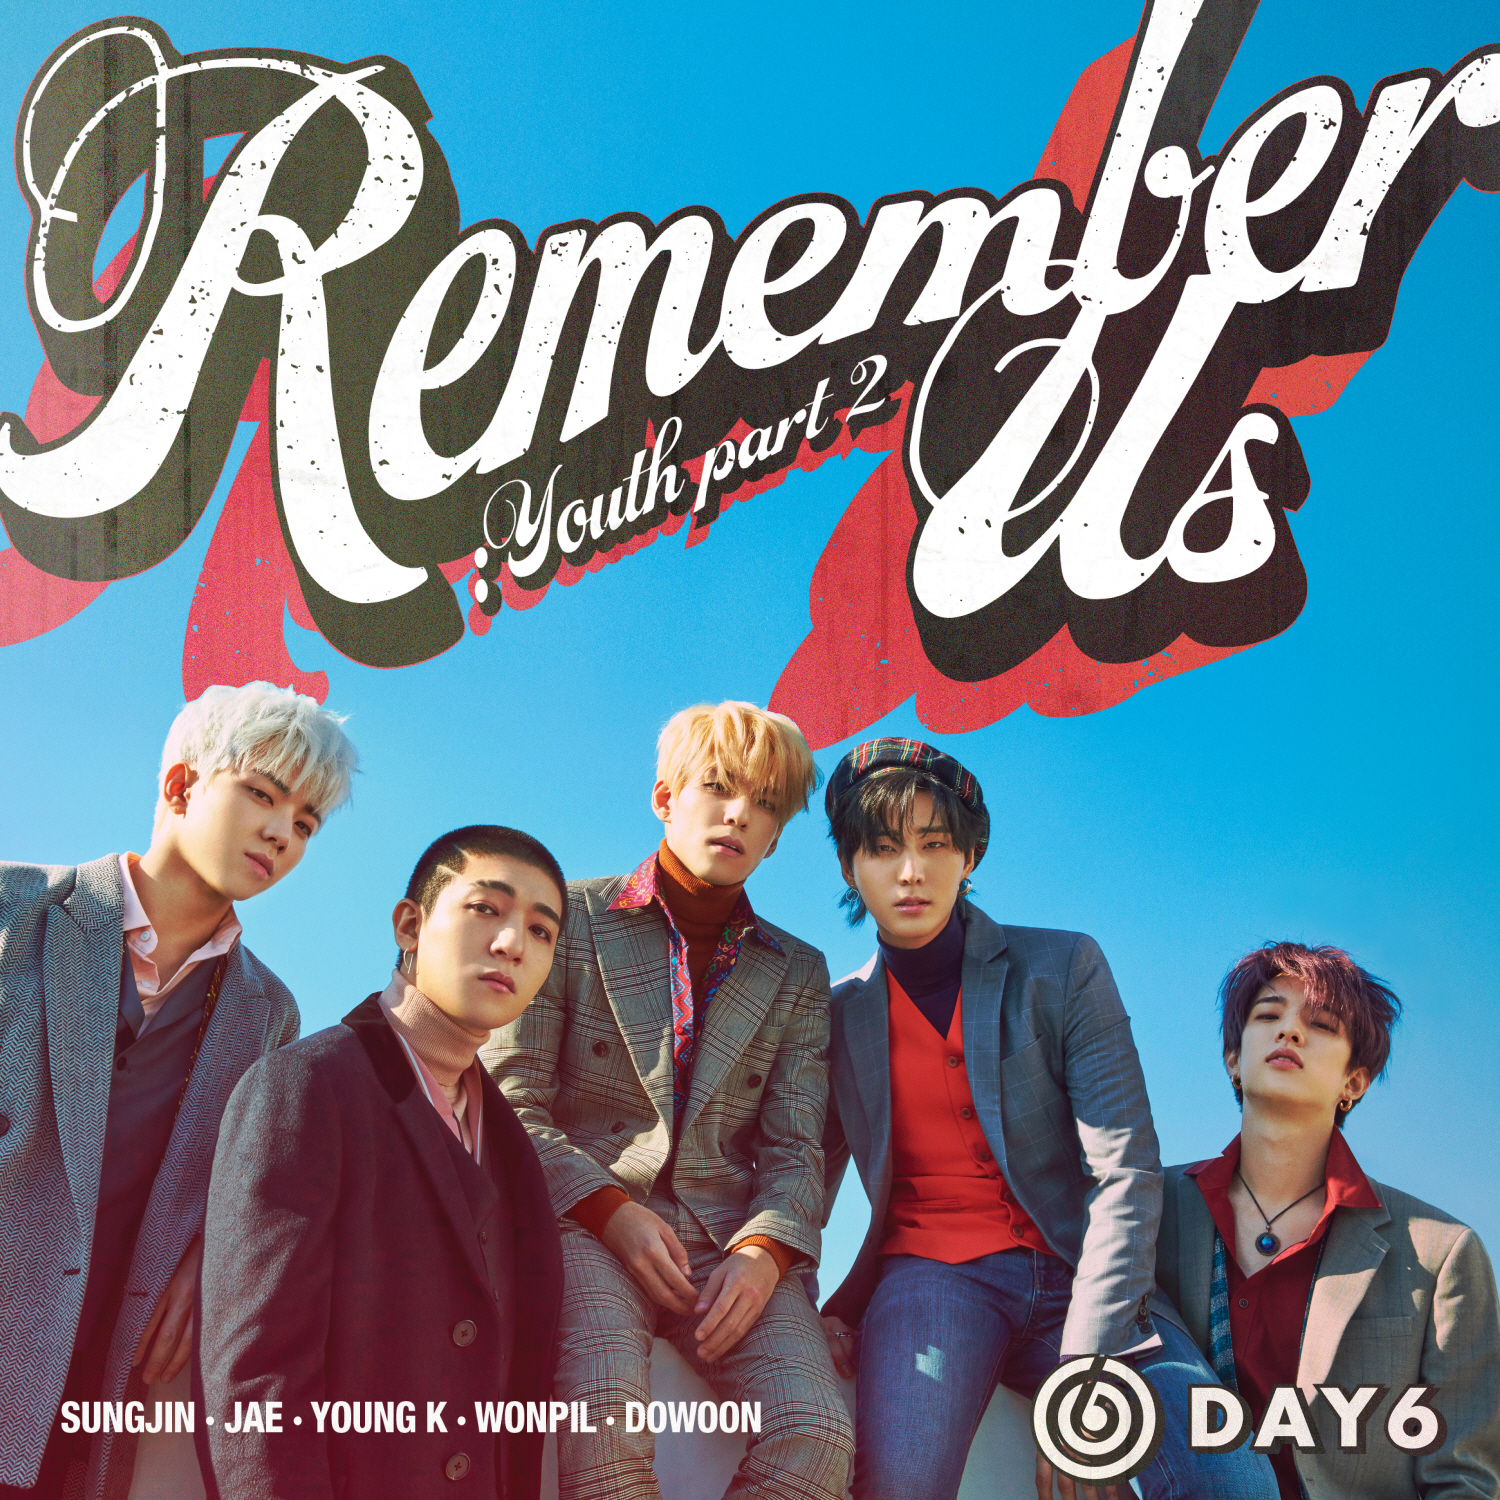 Remember Us : Youth Part 2